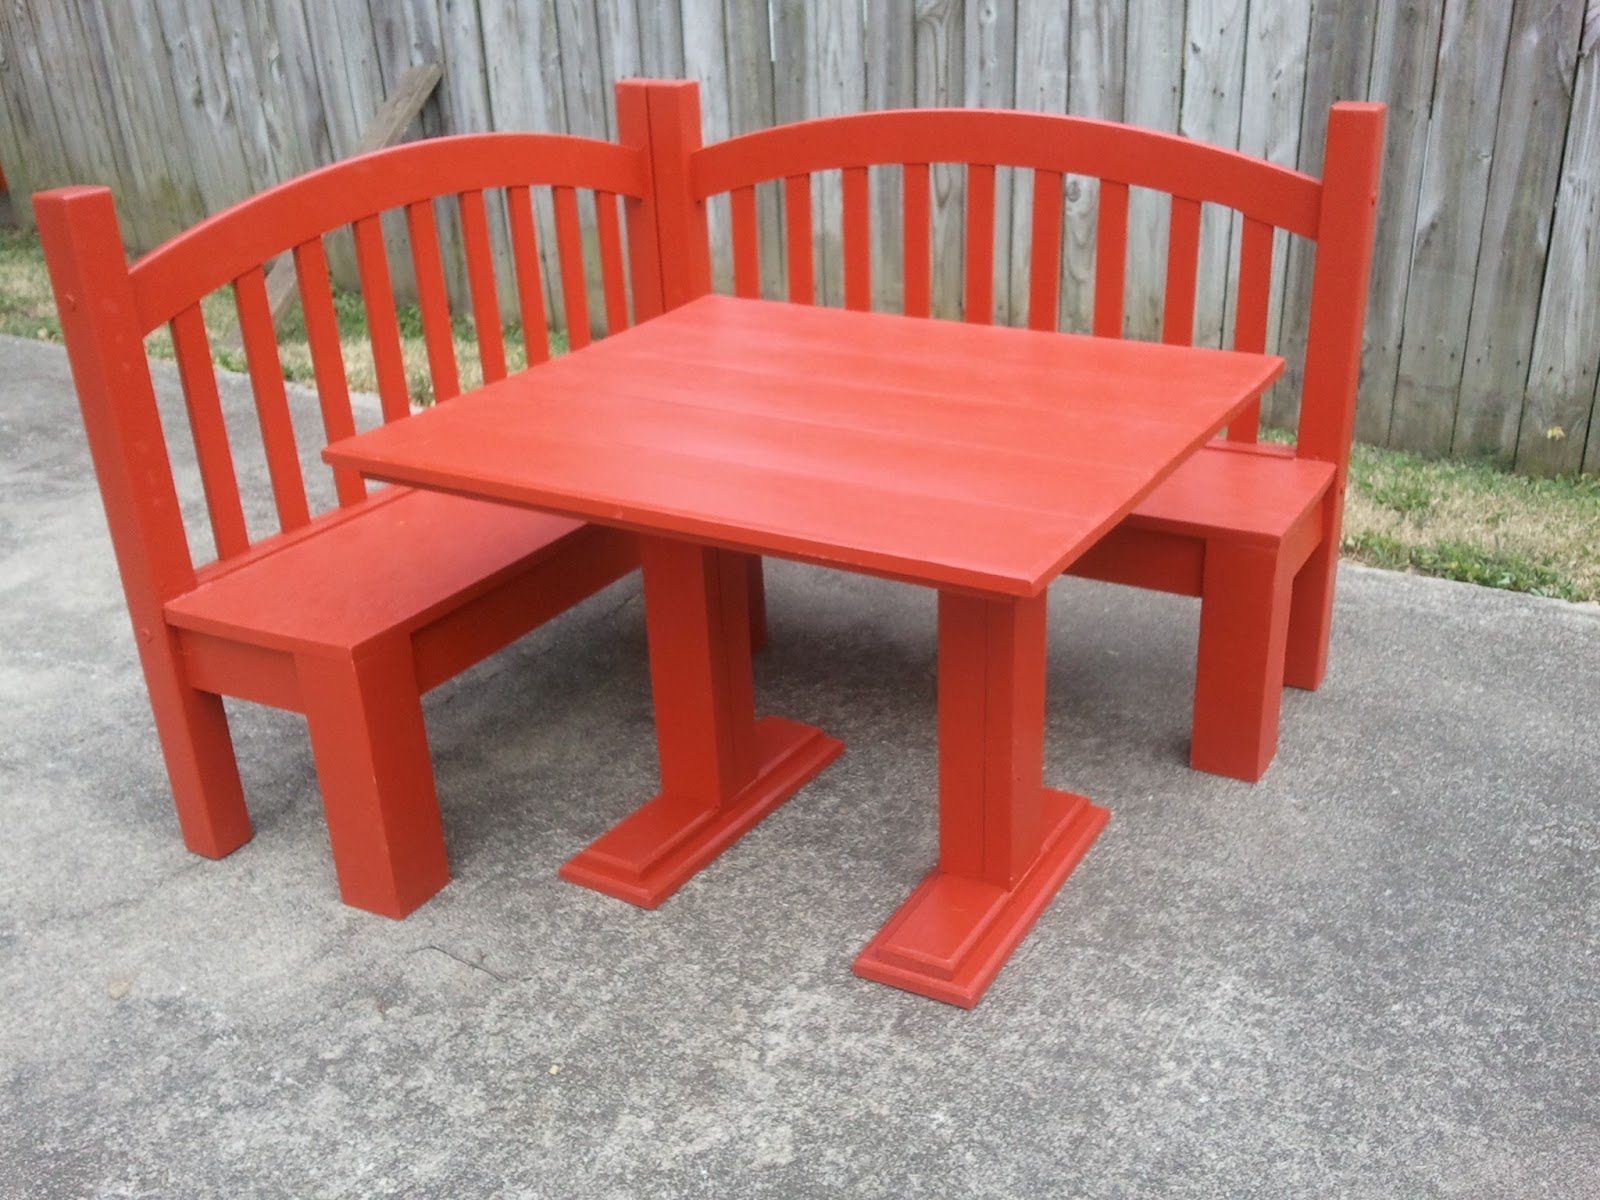 Diy corner dining bench - Red Bench And Table For Kids